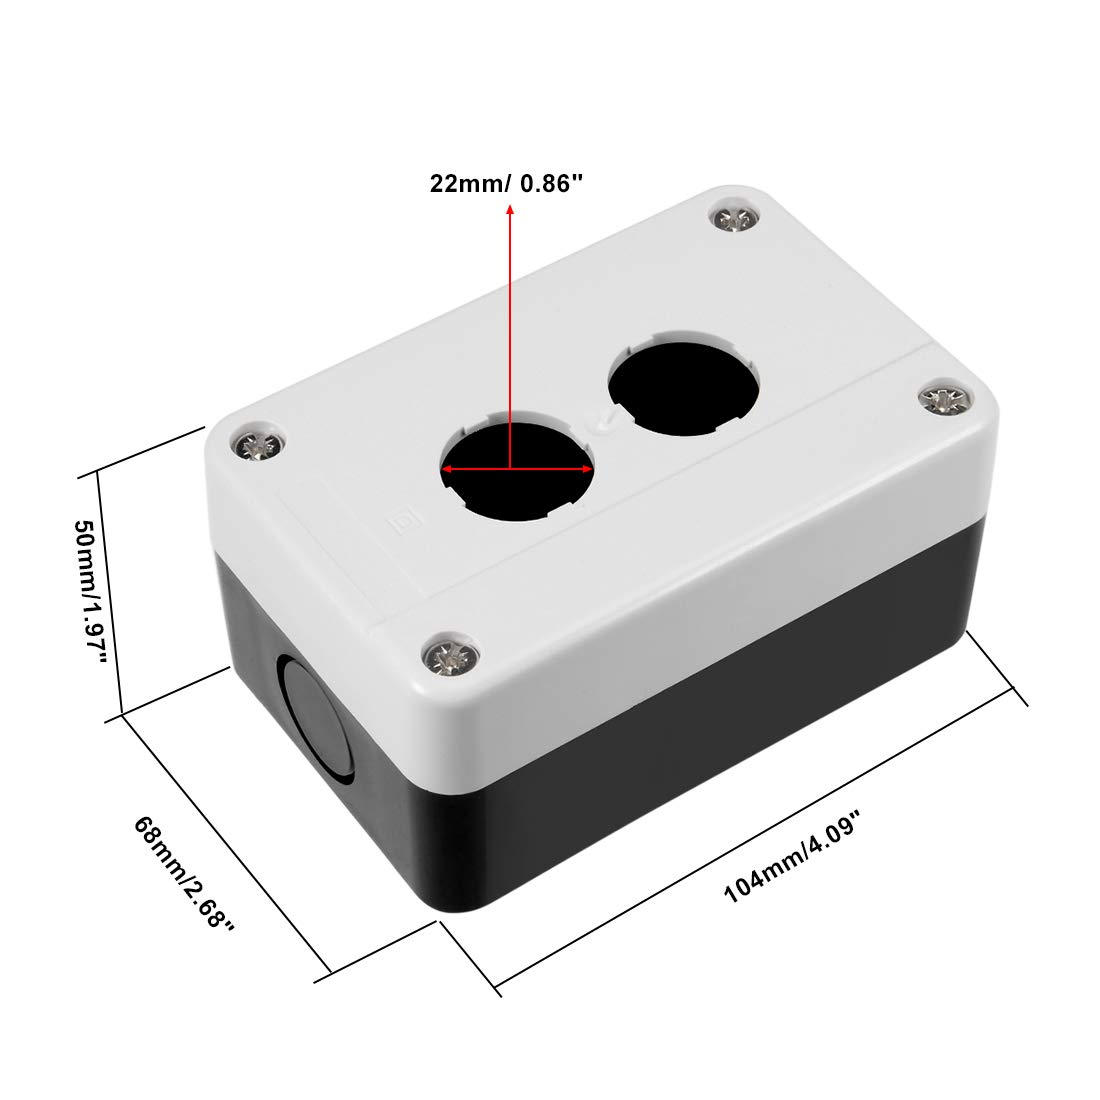 uxcell Push Button Switch Control Station Box 22mm 1 Button Hole Waterproof Black and White